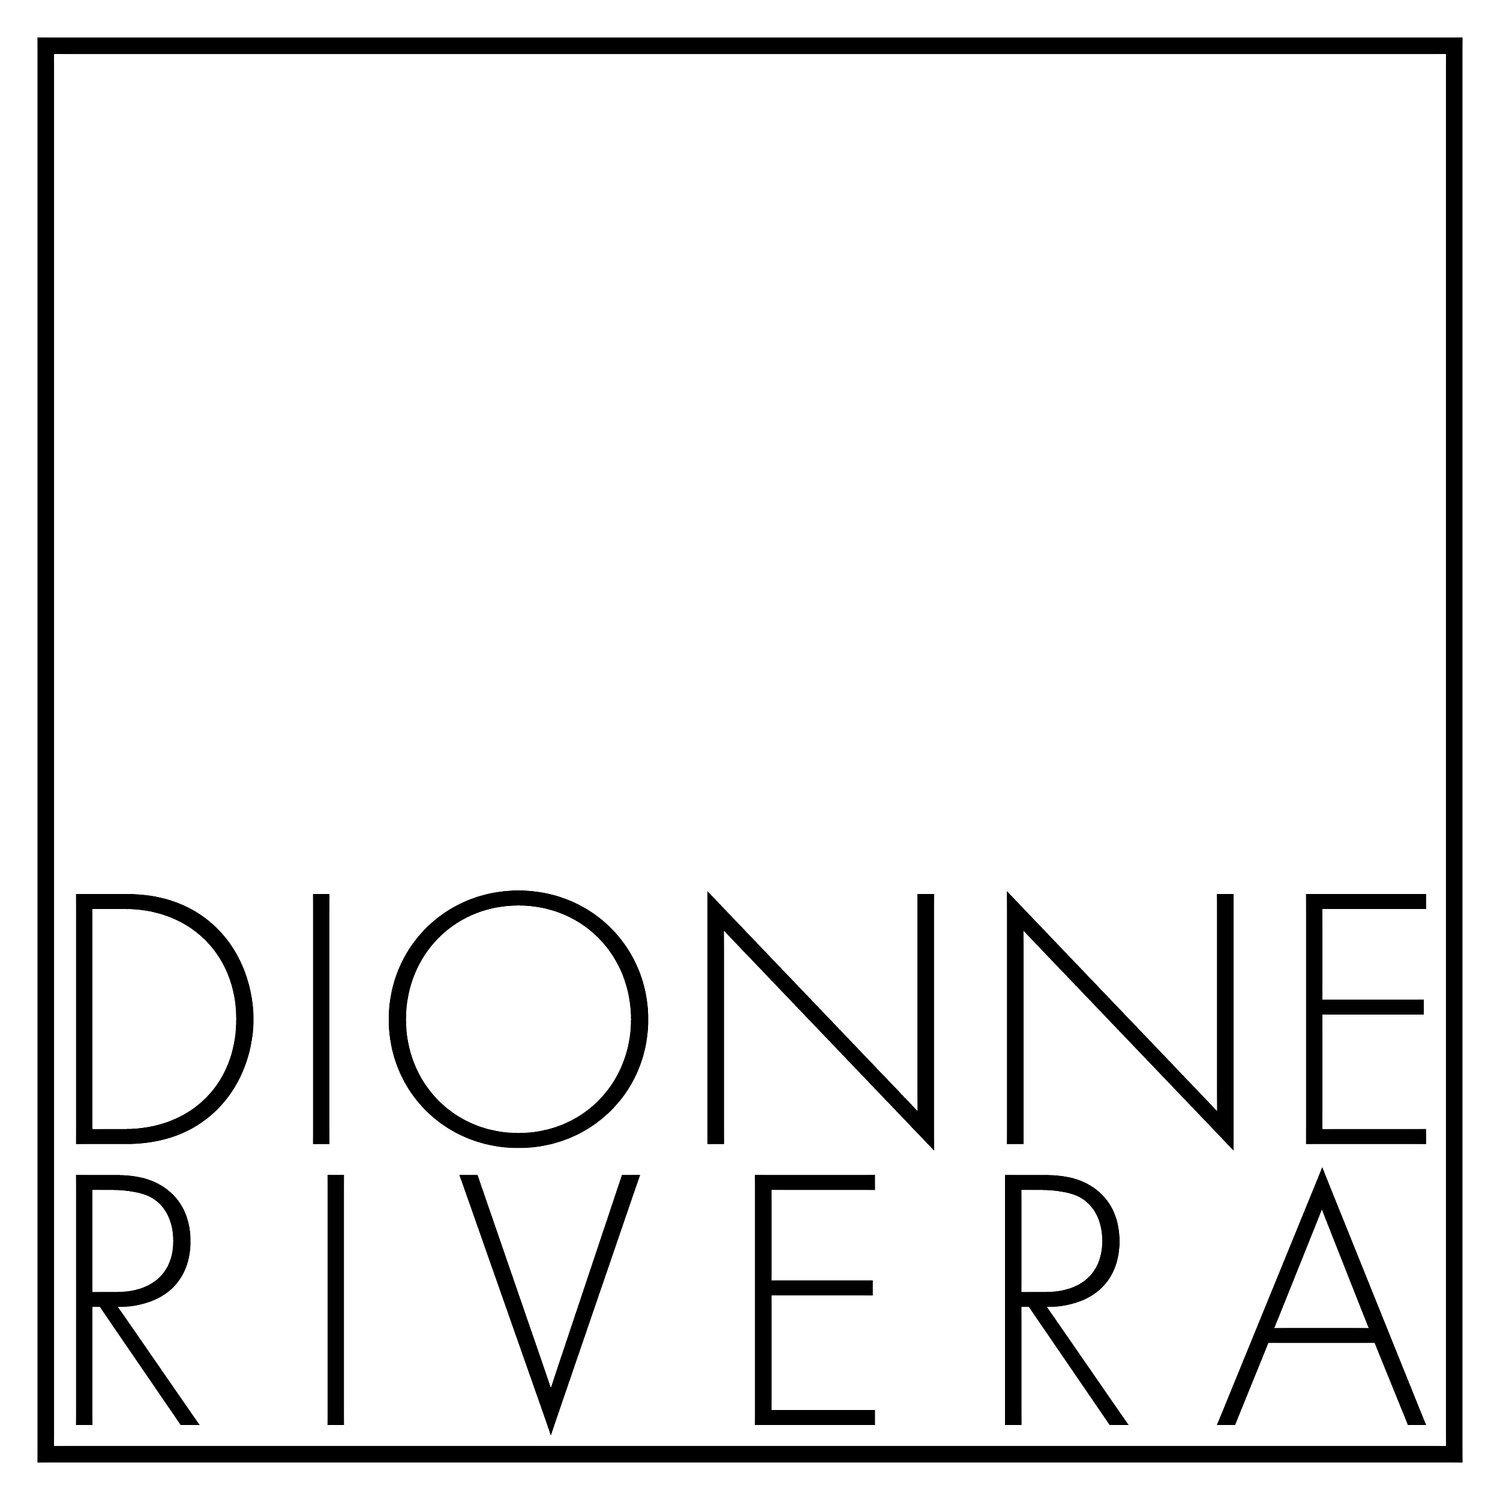 DIONNE RIVERA DESIGN